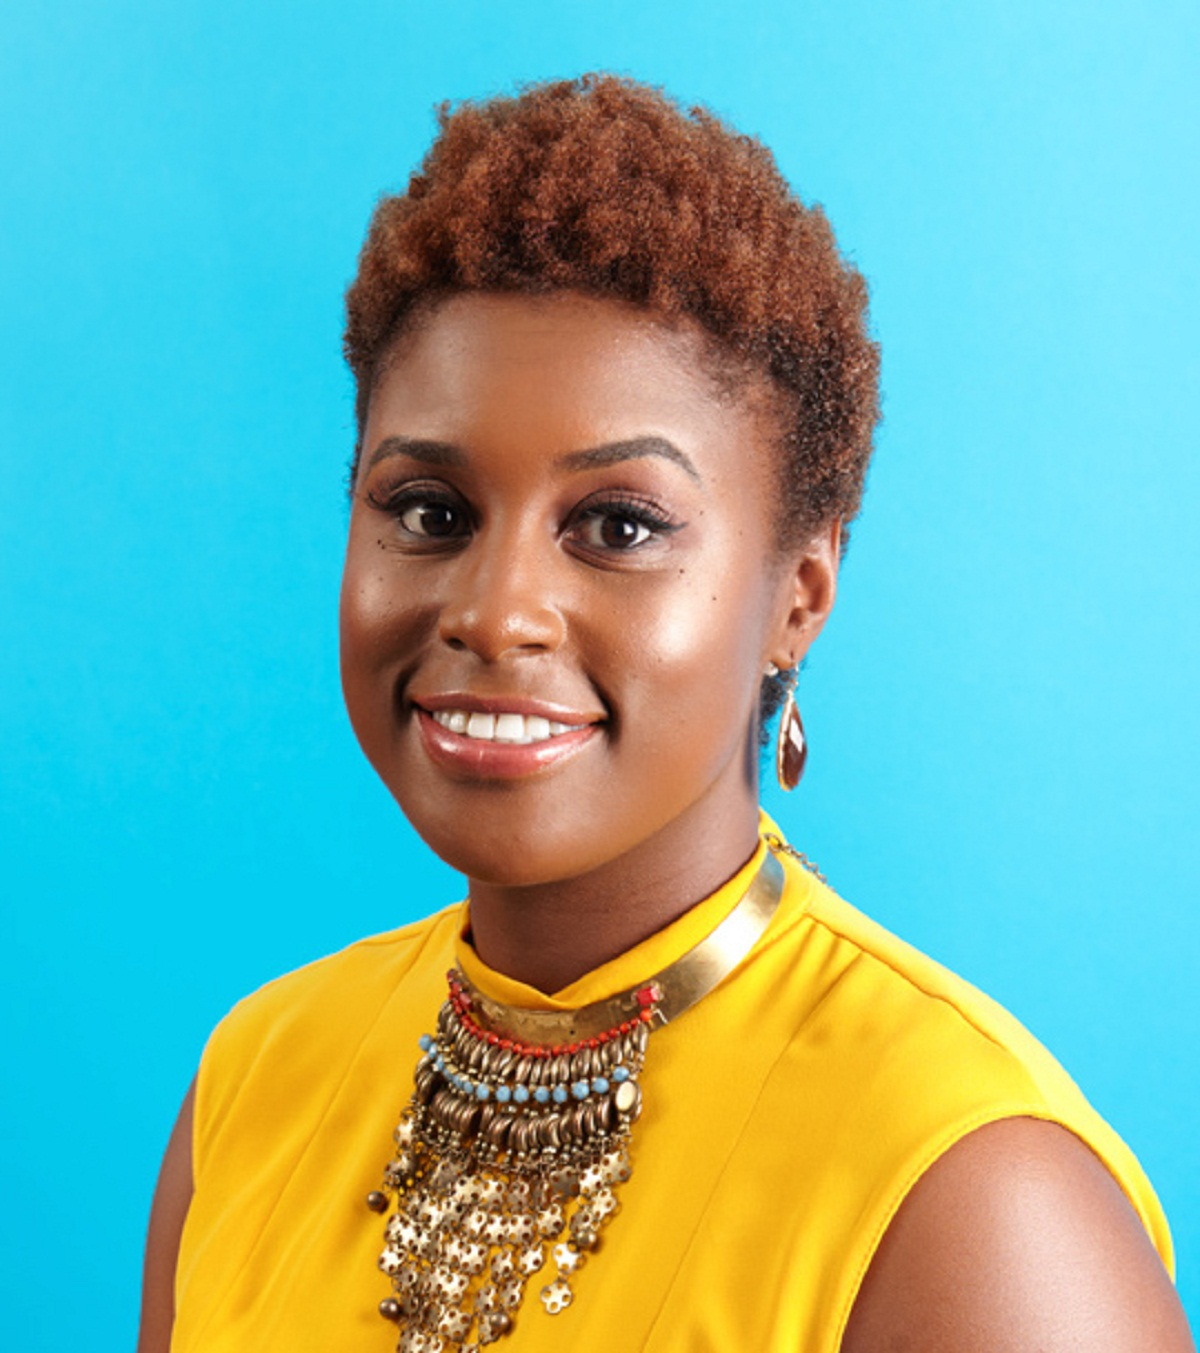 The Misadventures Of Awkward Black Girl  Book By Issa Rae